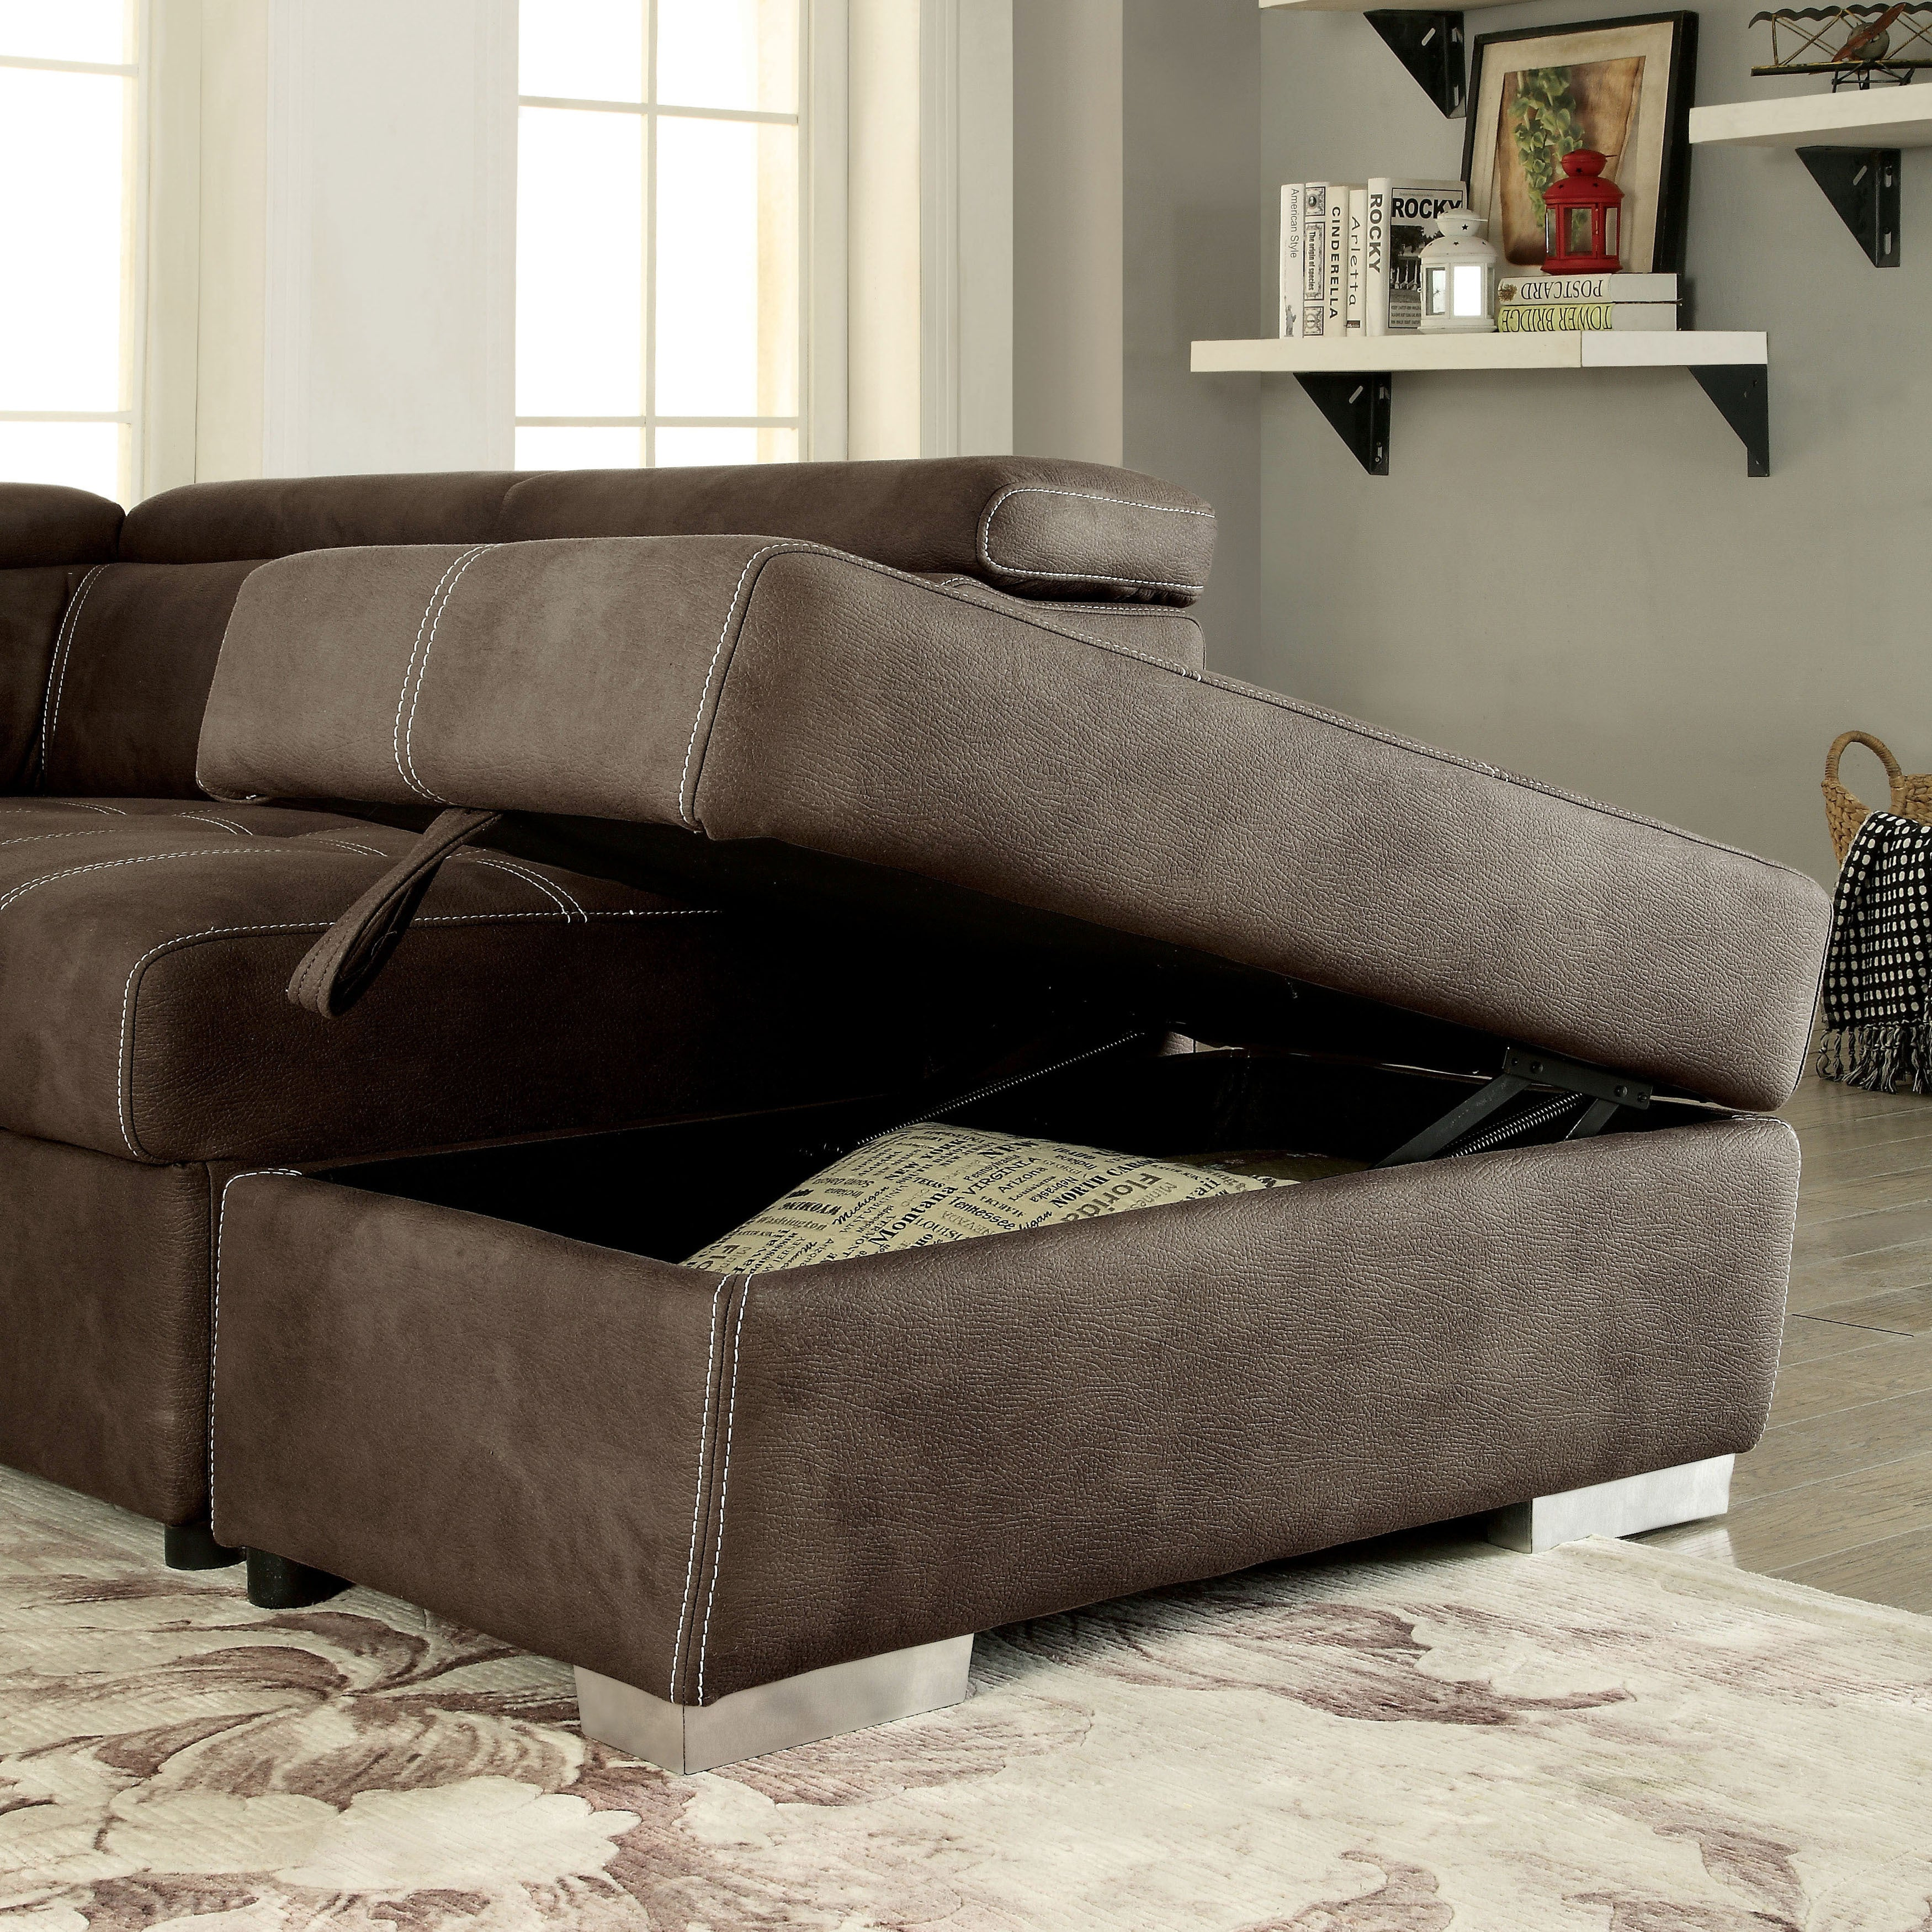 mattress livingroom canada bed design pull comfortable sofa great out sectional best the pretty world pad awesome queen in most guests beds